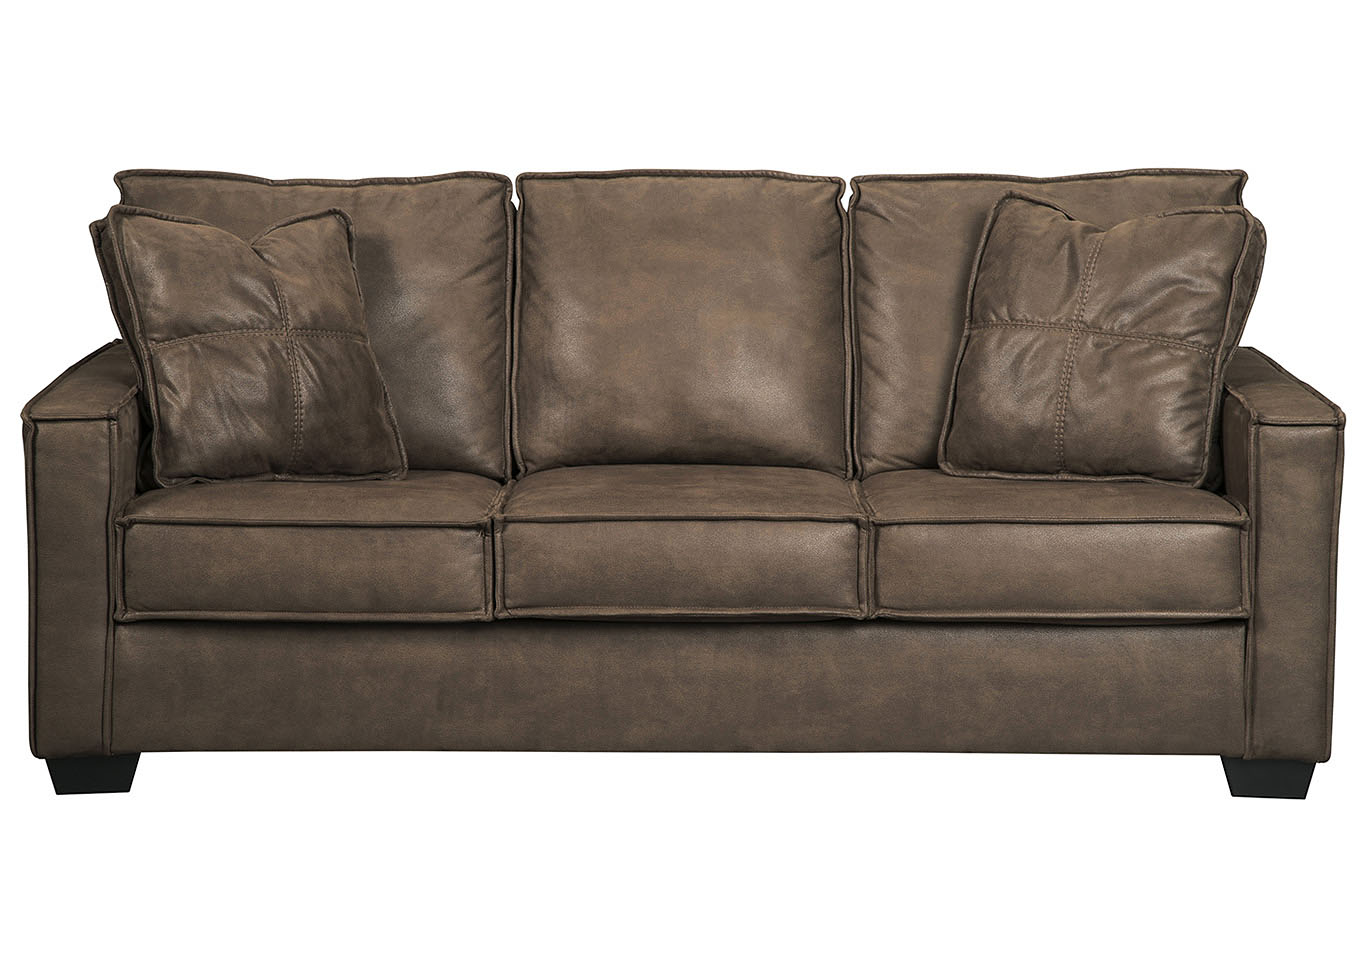 Terrington Harness Sofa,Signature Design By Ashley